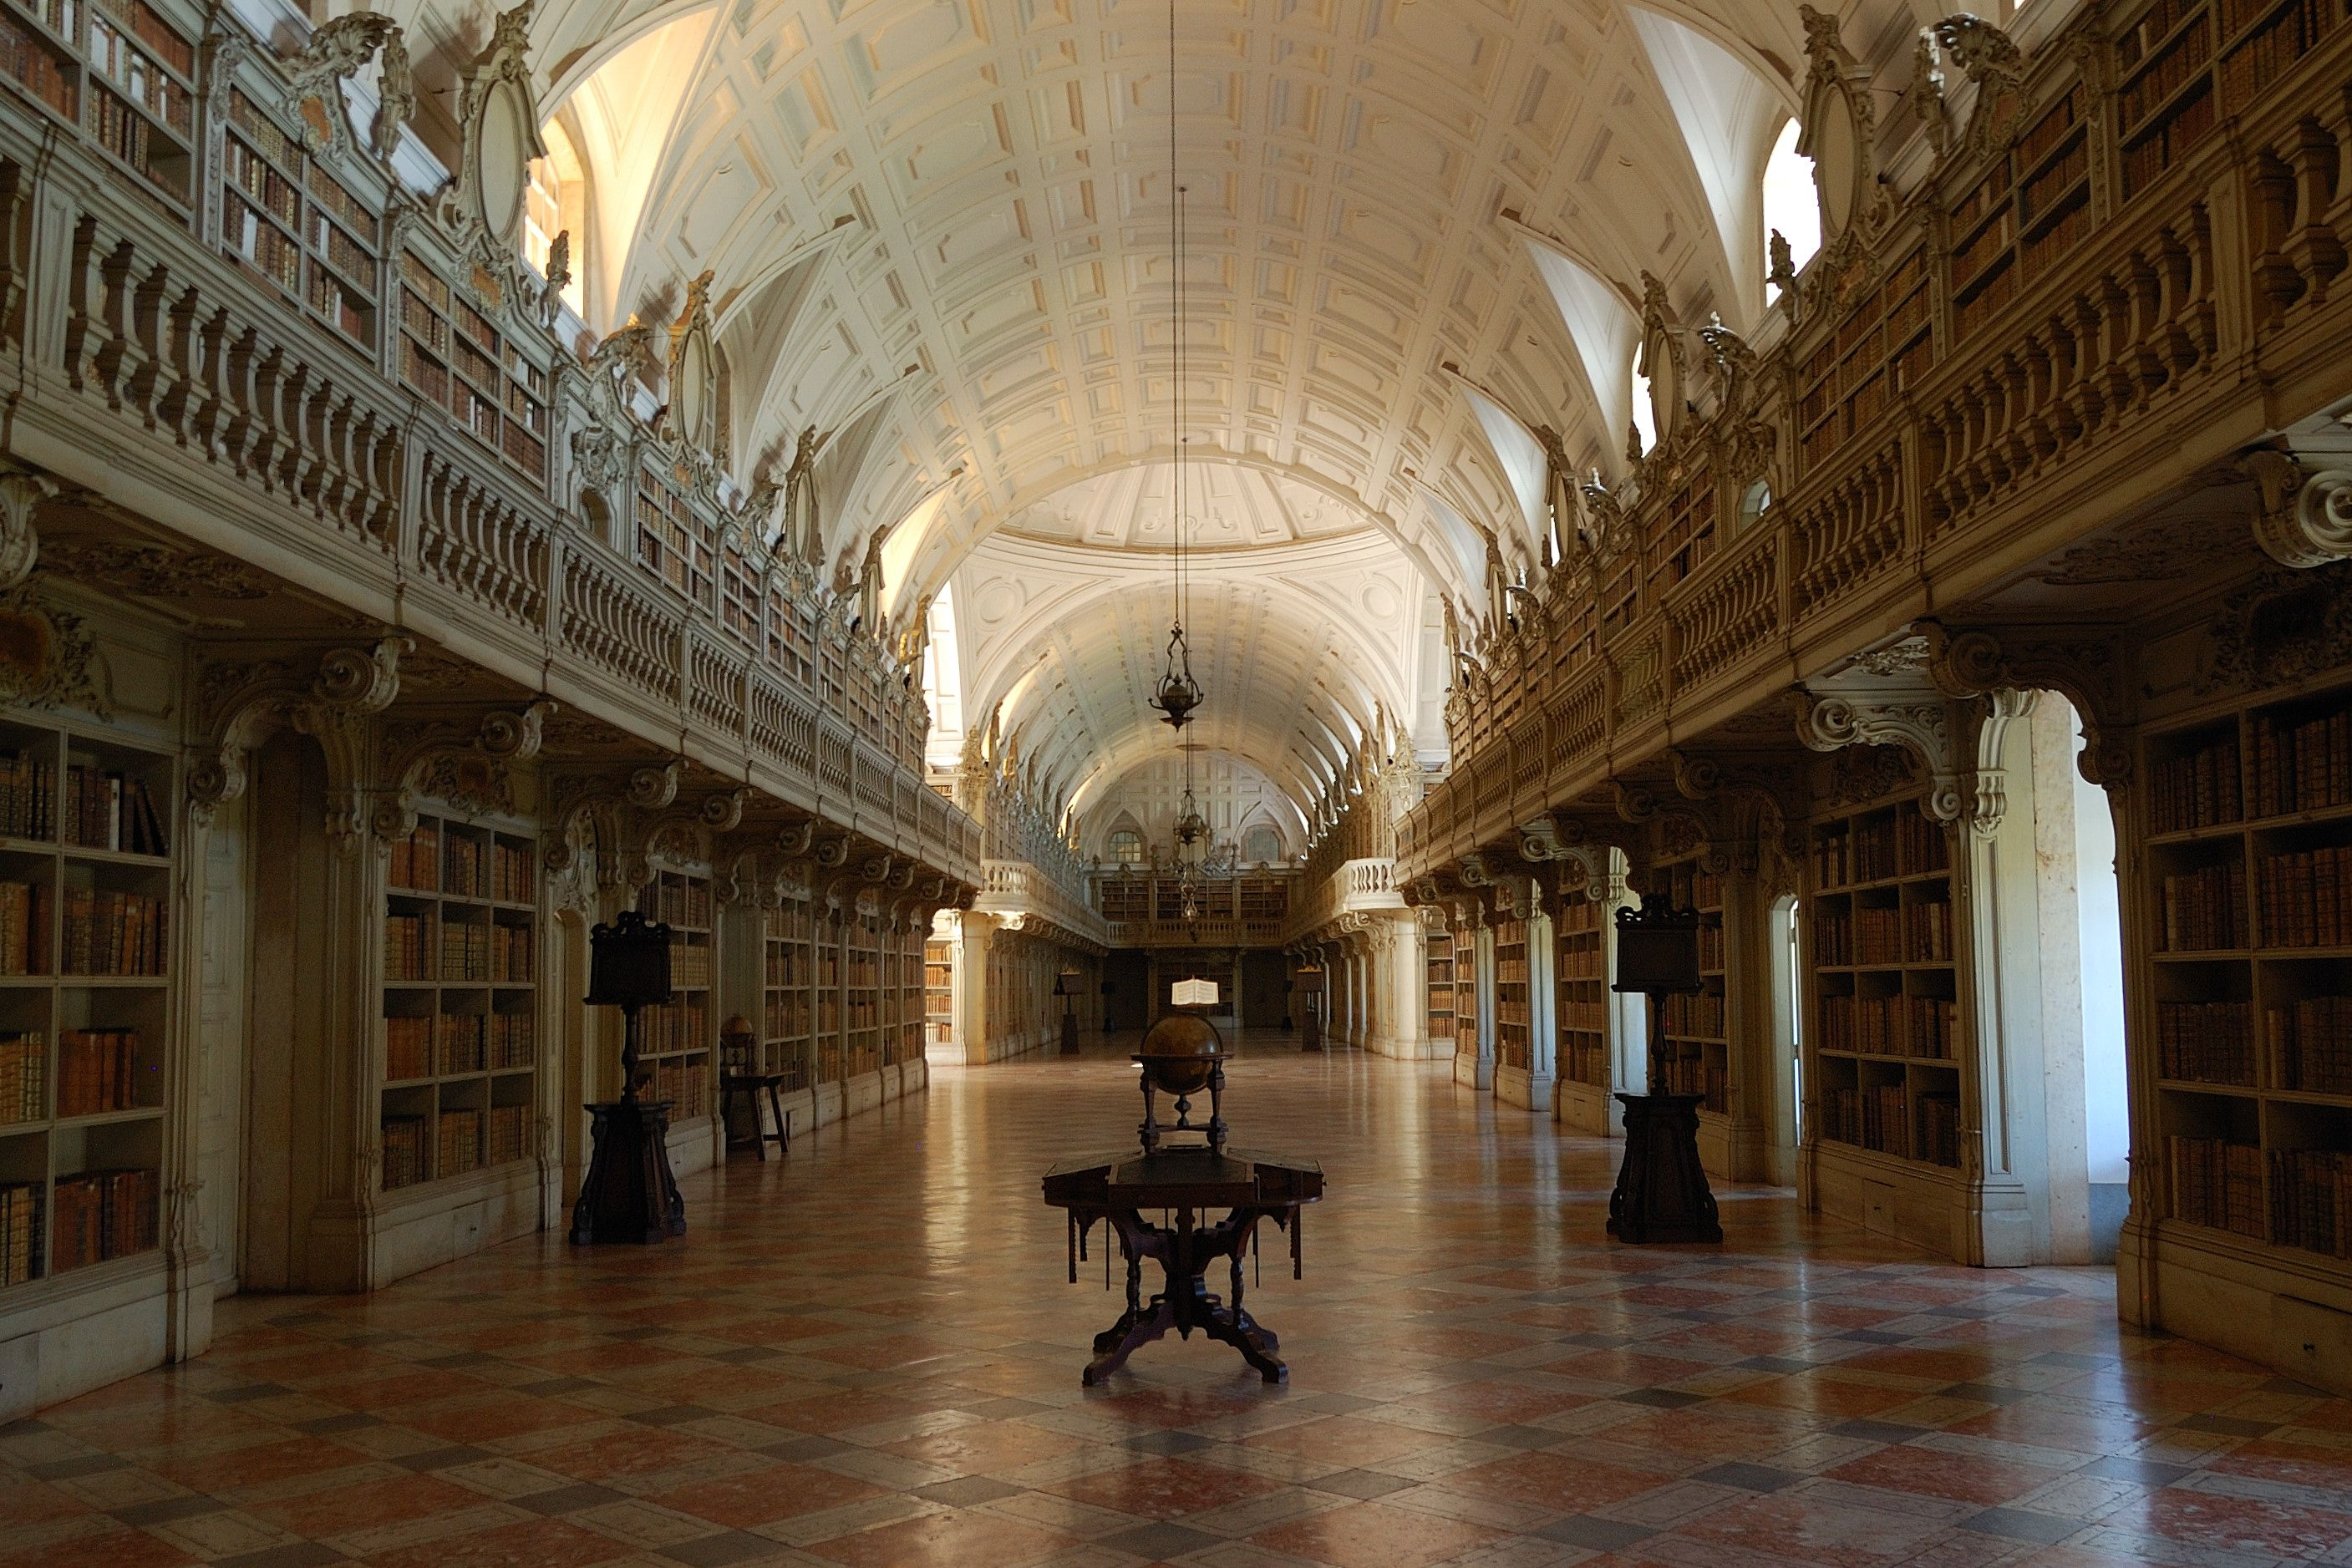 Biblioteca do Palácio Nacional de Mafra | Library of Mafra National Palace